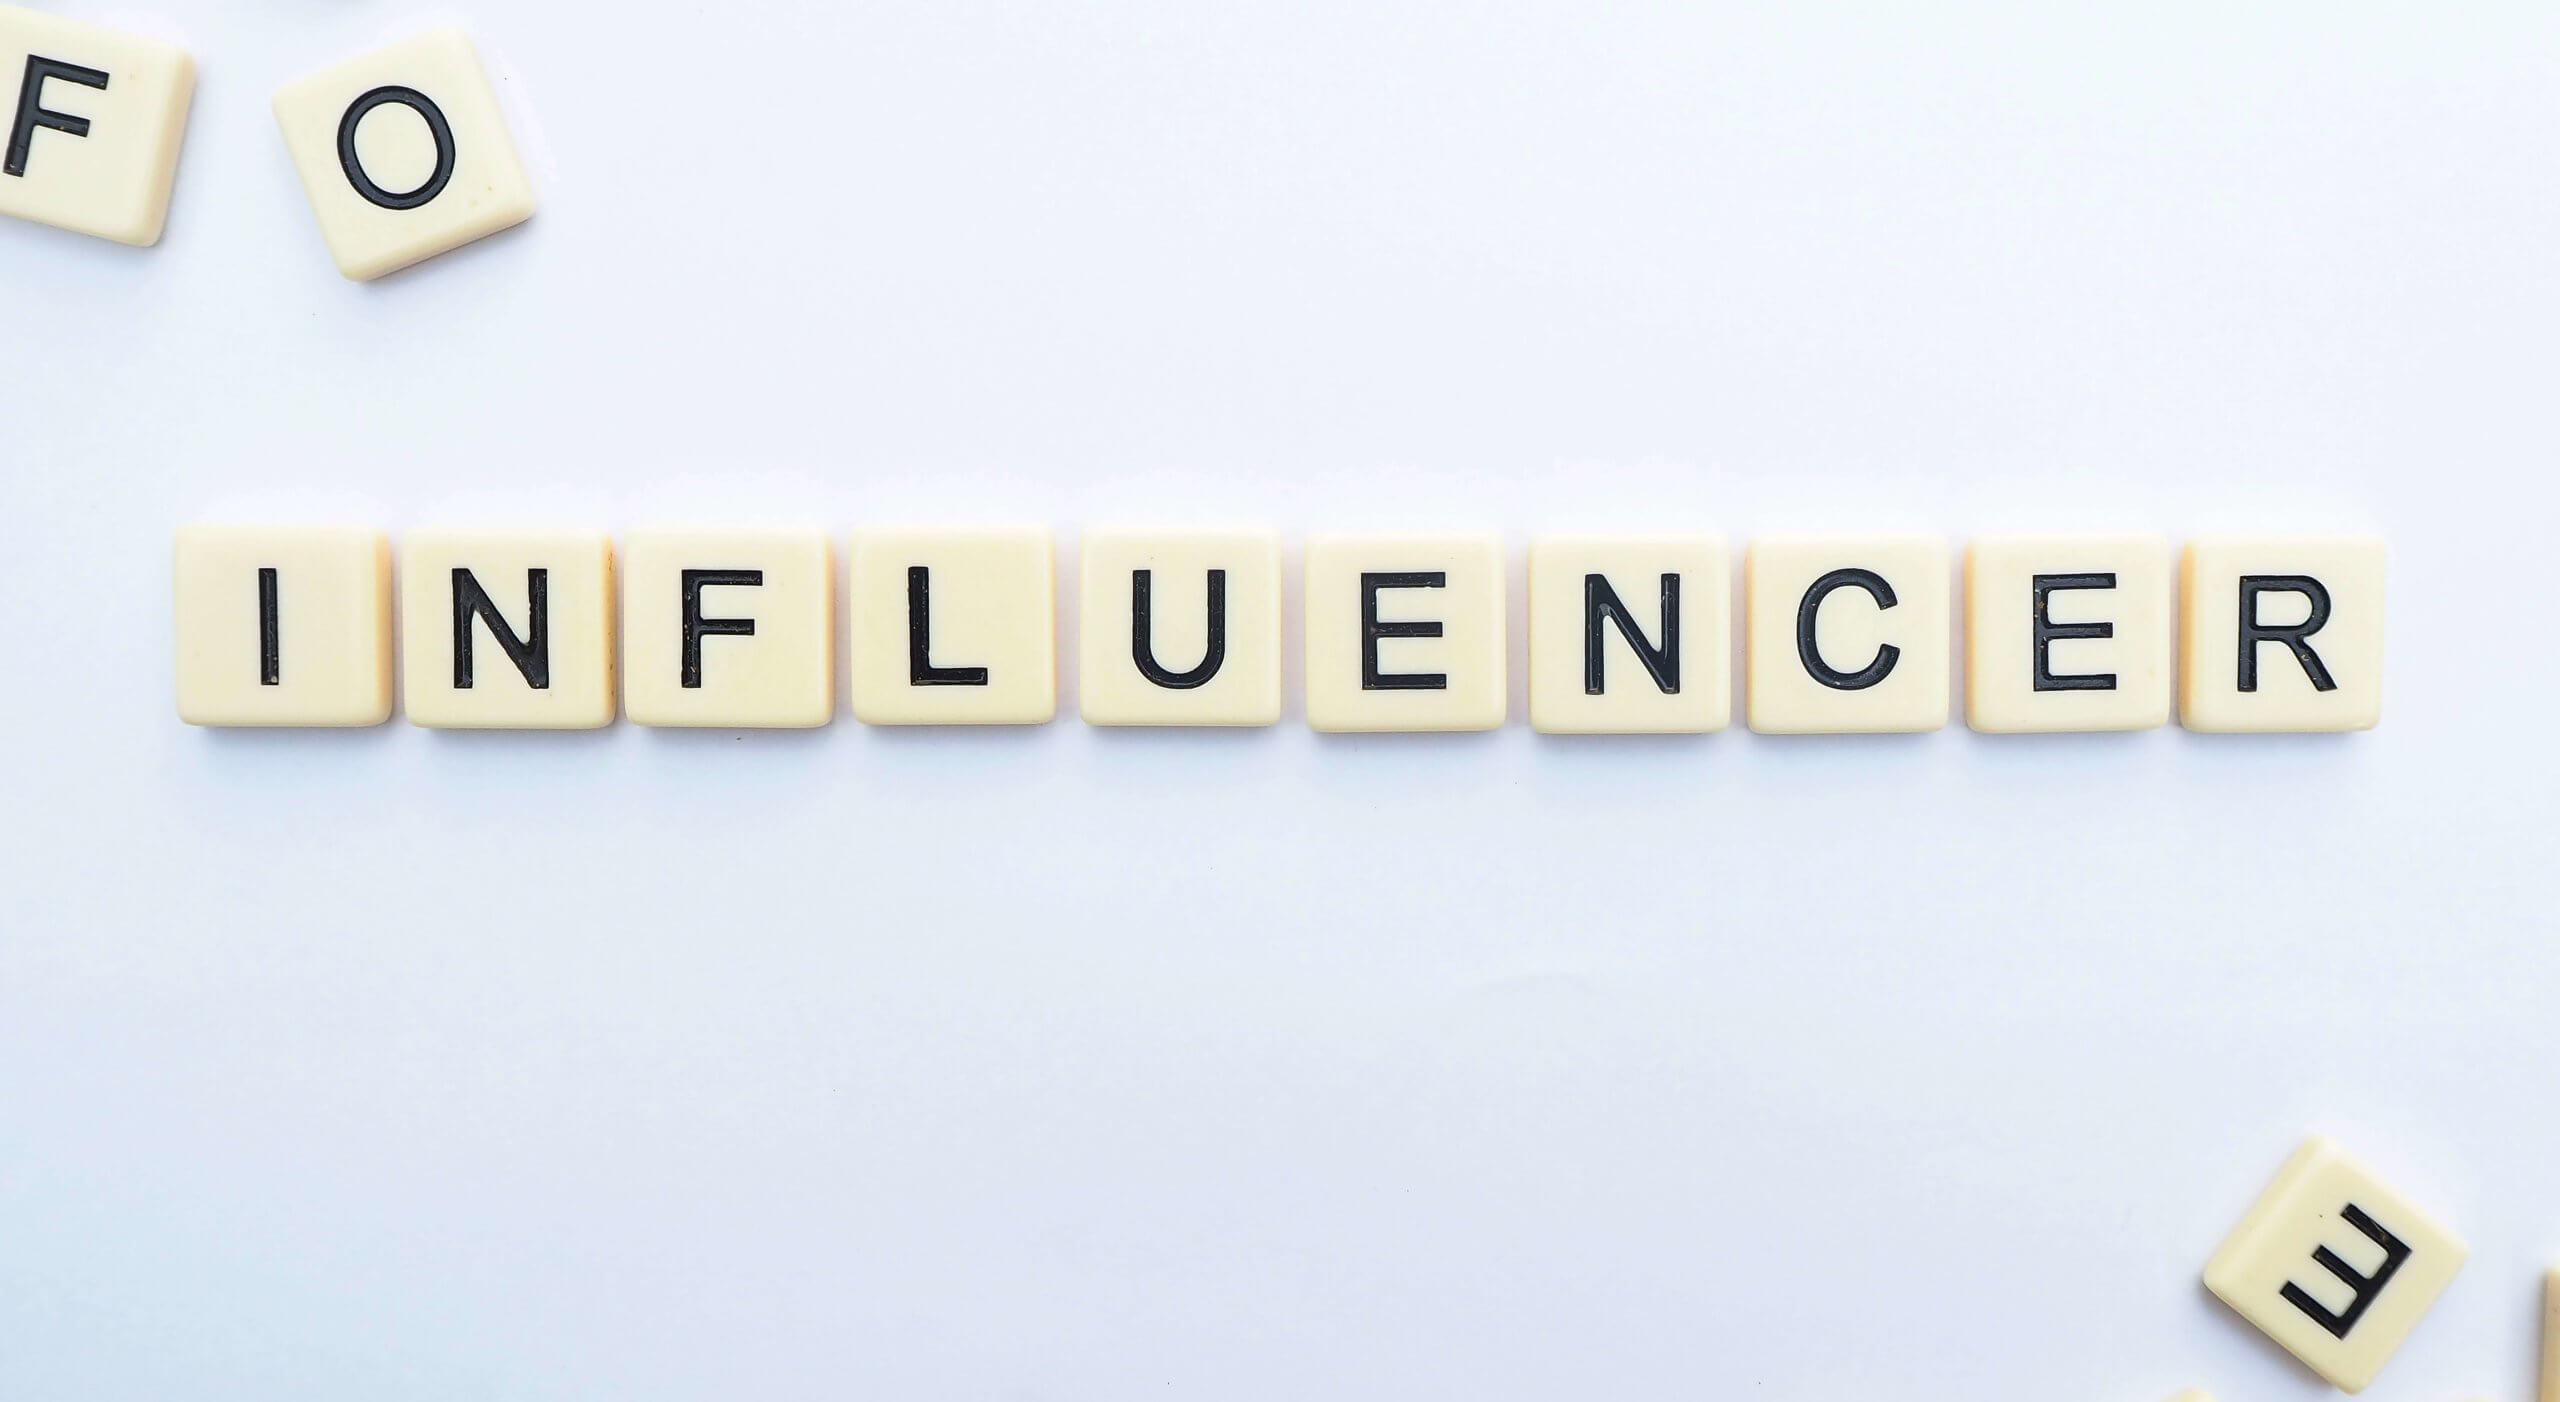 What Is Influencer Marketing & How Does It Help Businesses?